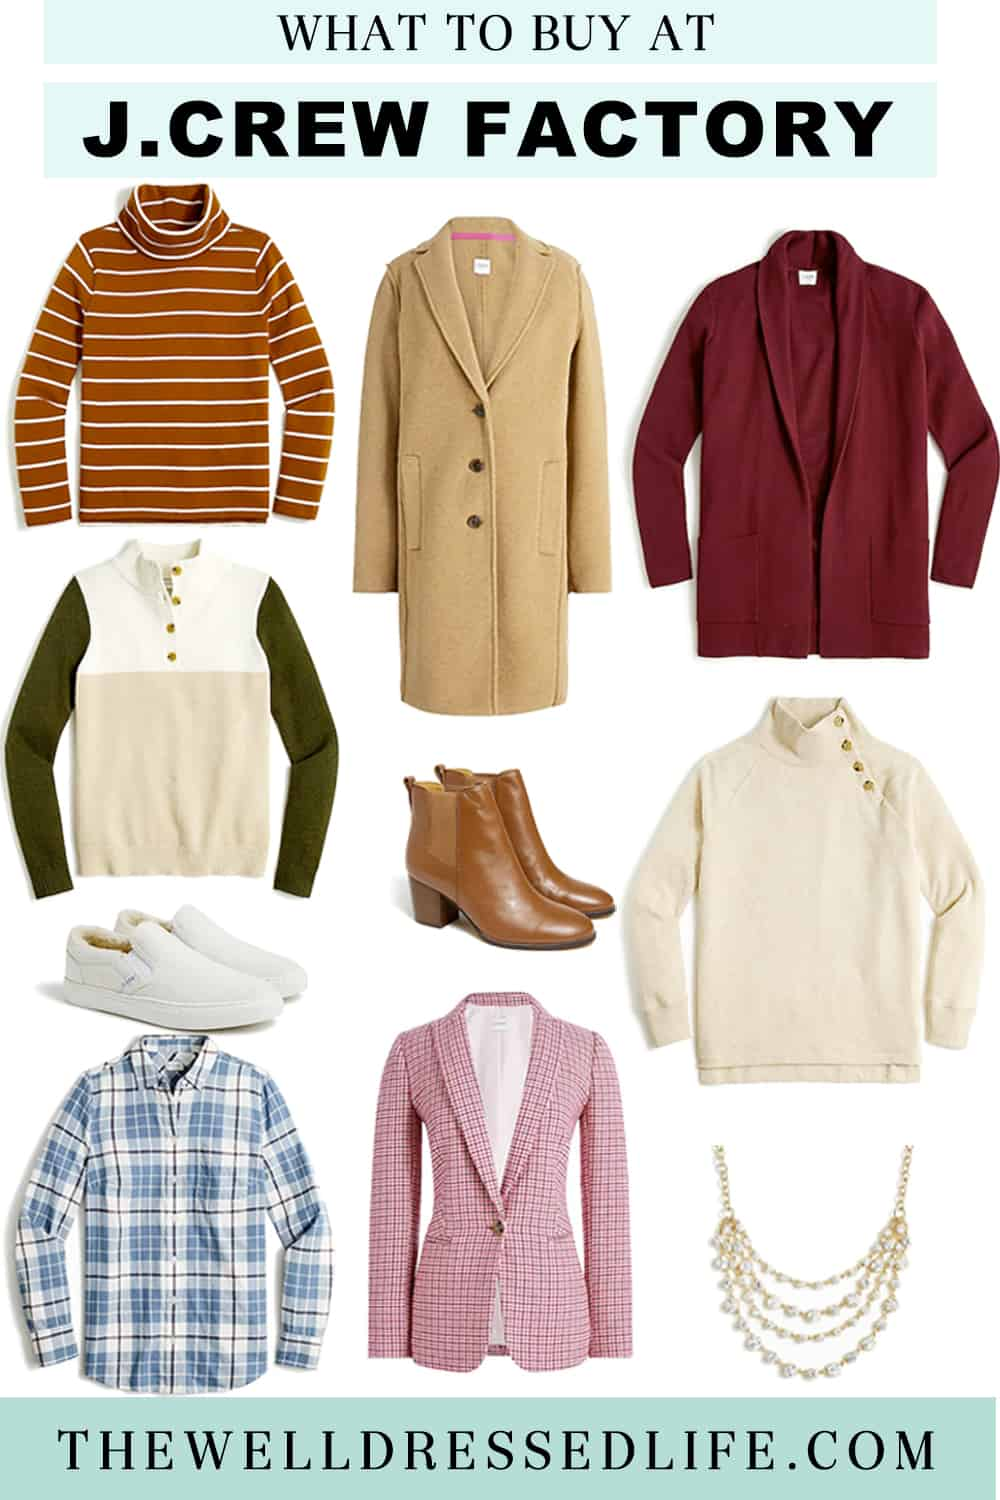 What to Buy at J. Crew Factory